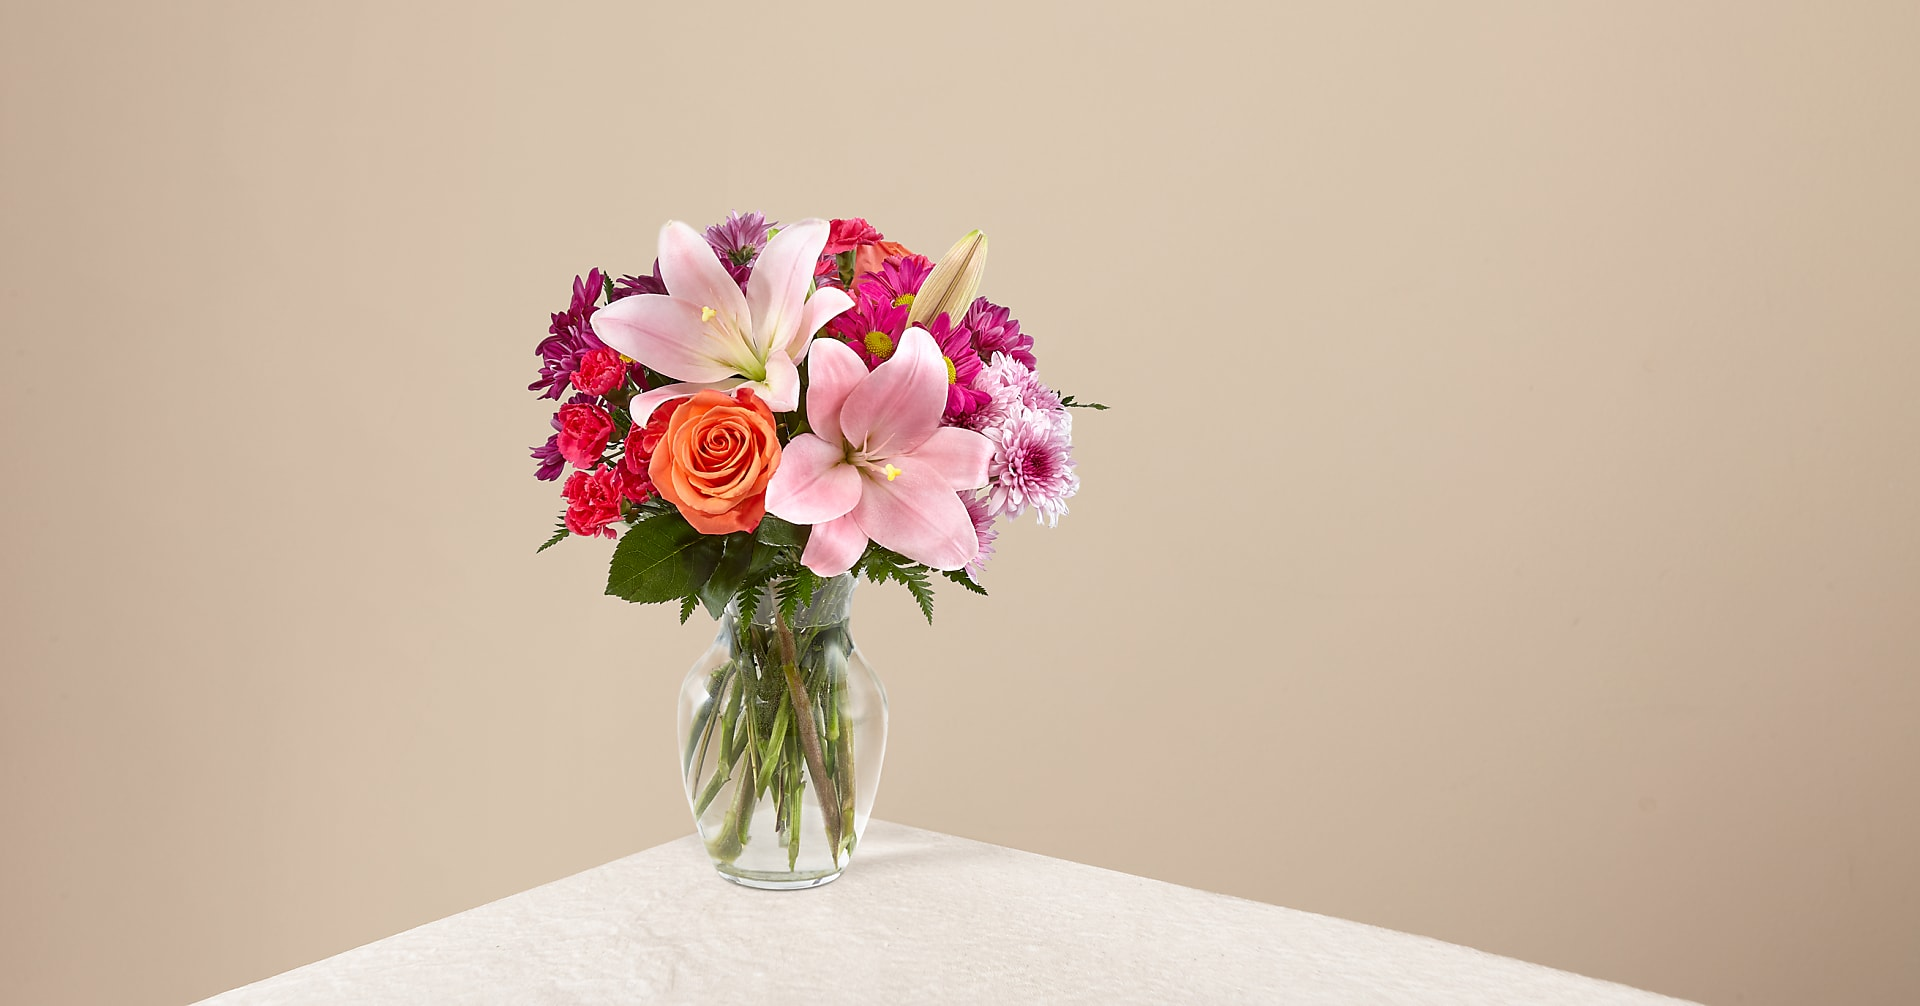 Light of My Life Bouquet - Image 1 Of 5